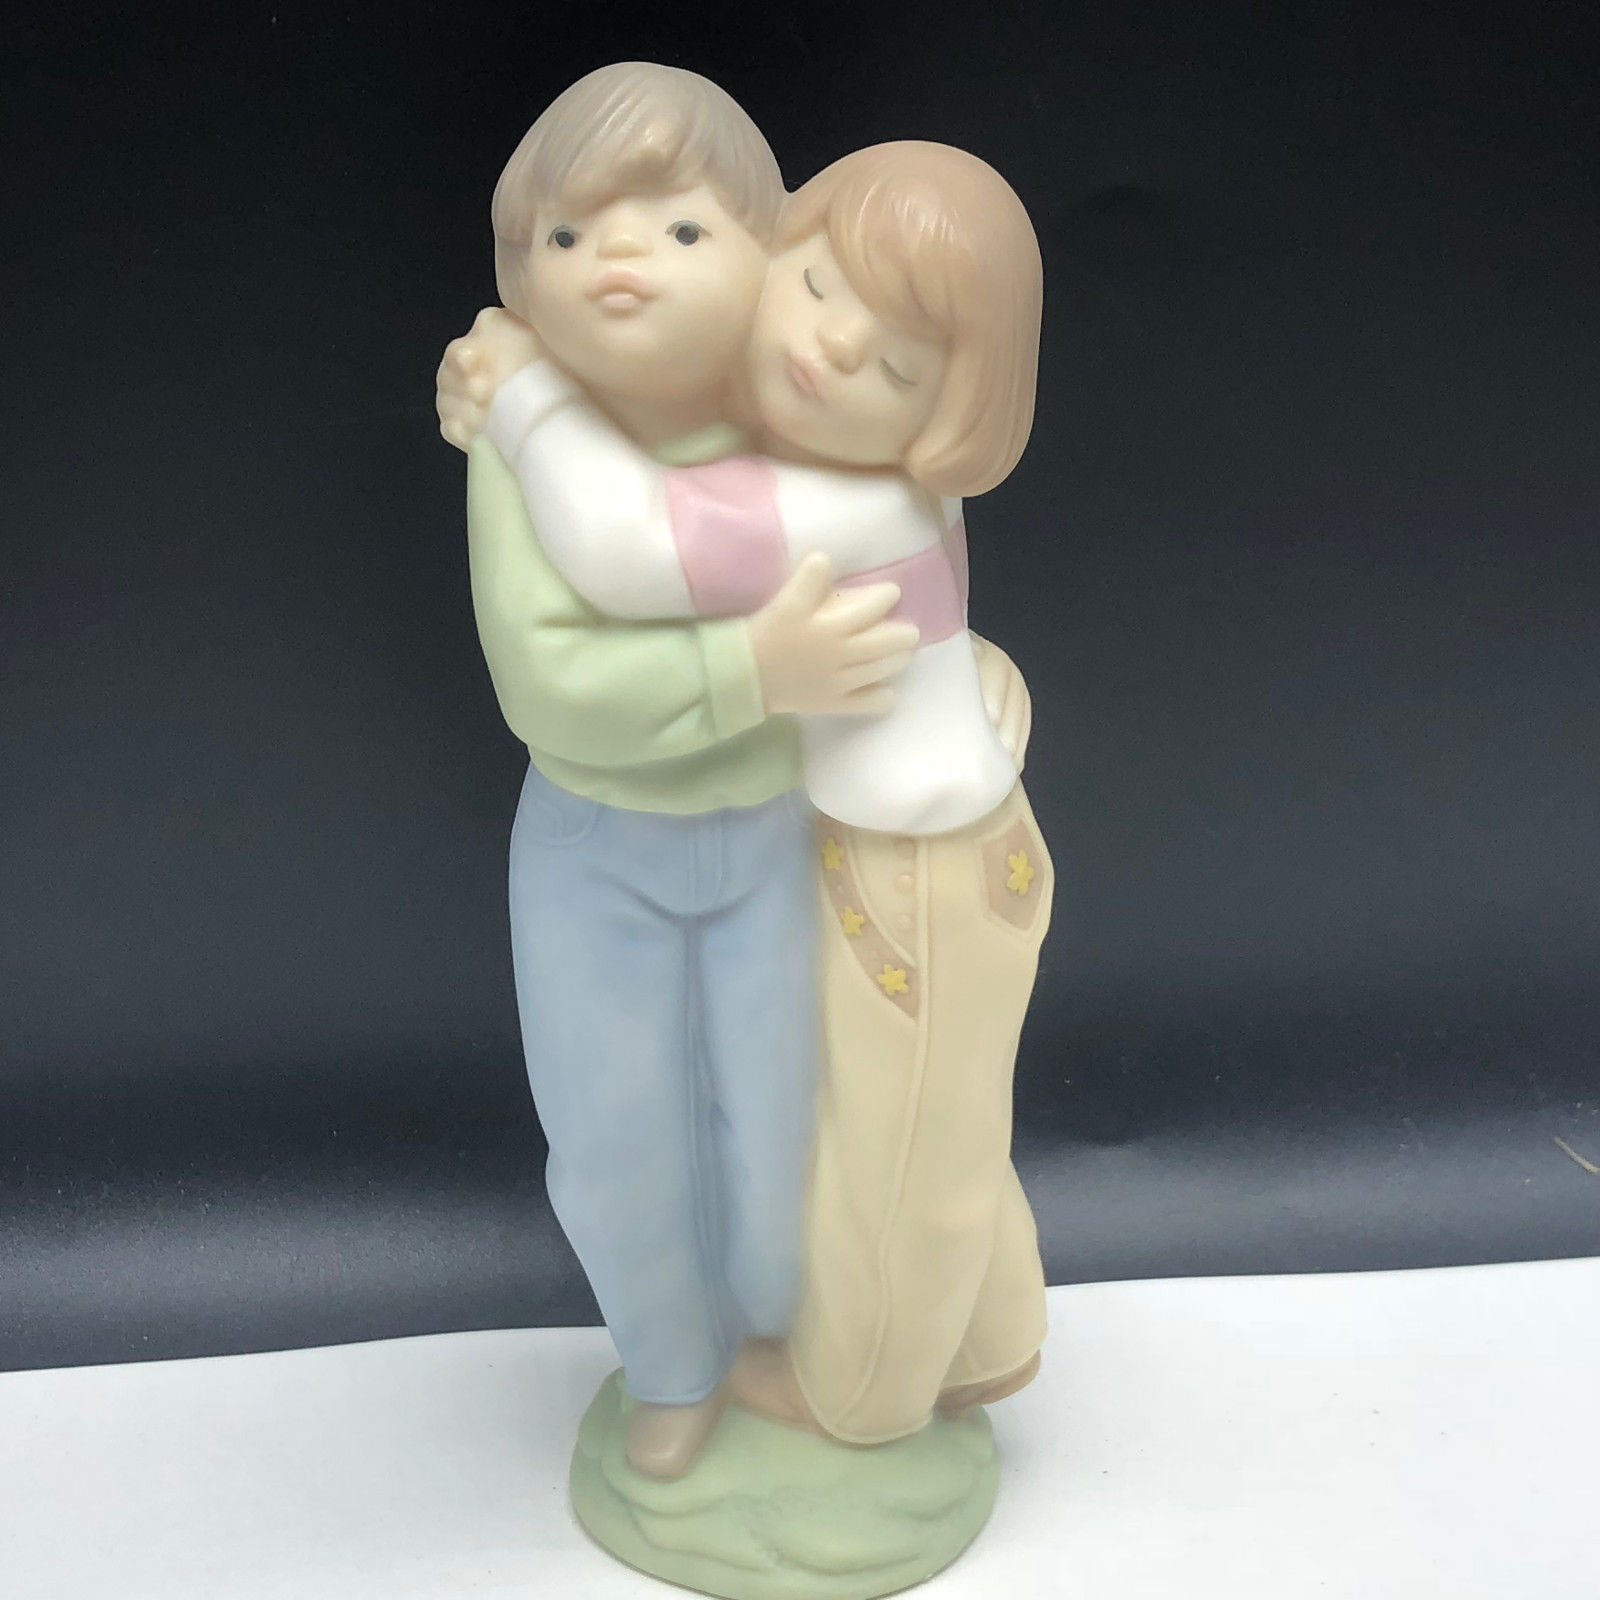 Primary image for DAISA FIGURINE SPAIN porcelain golden memories 1993 statue sculpture love couple